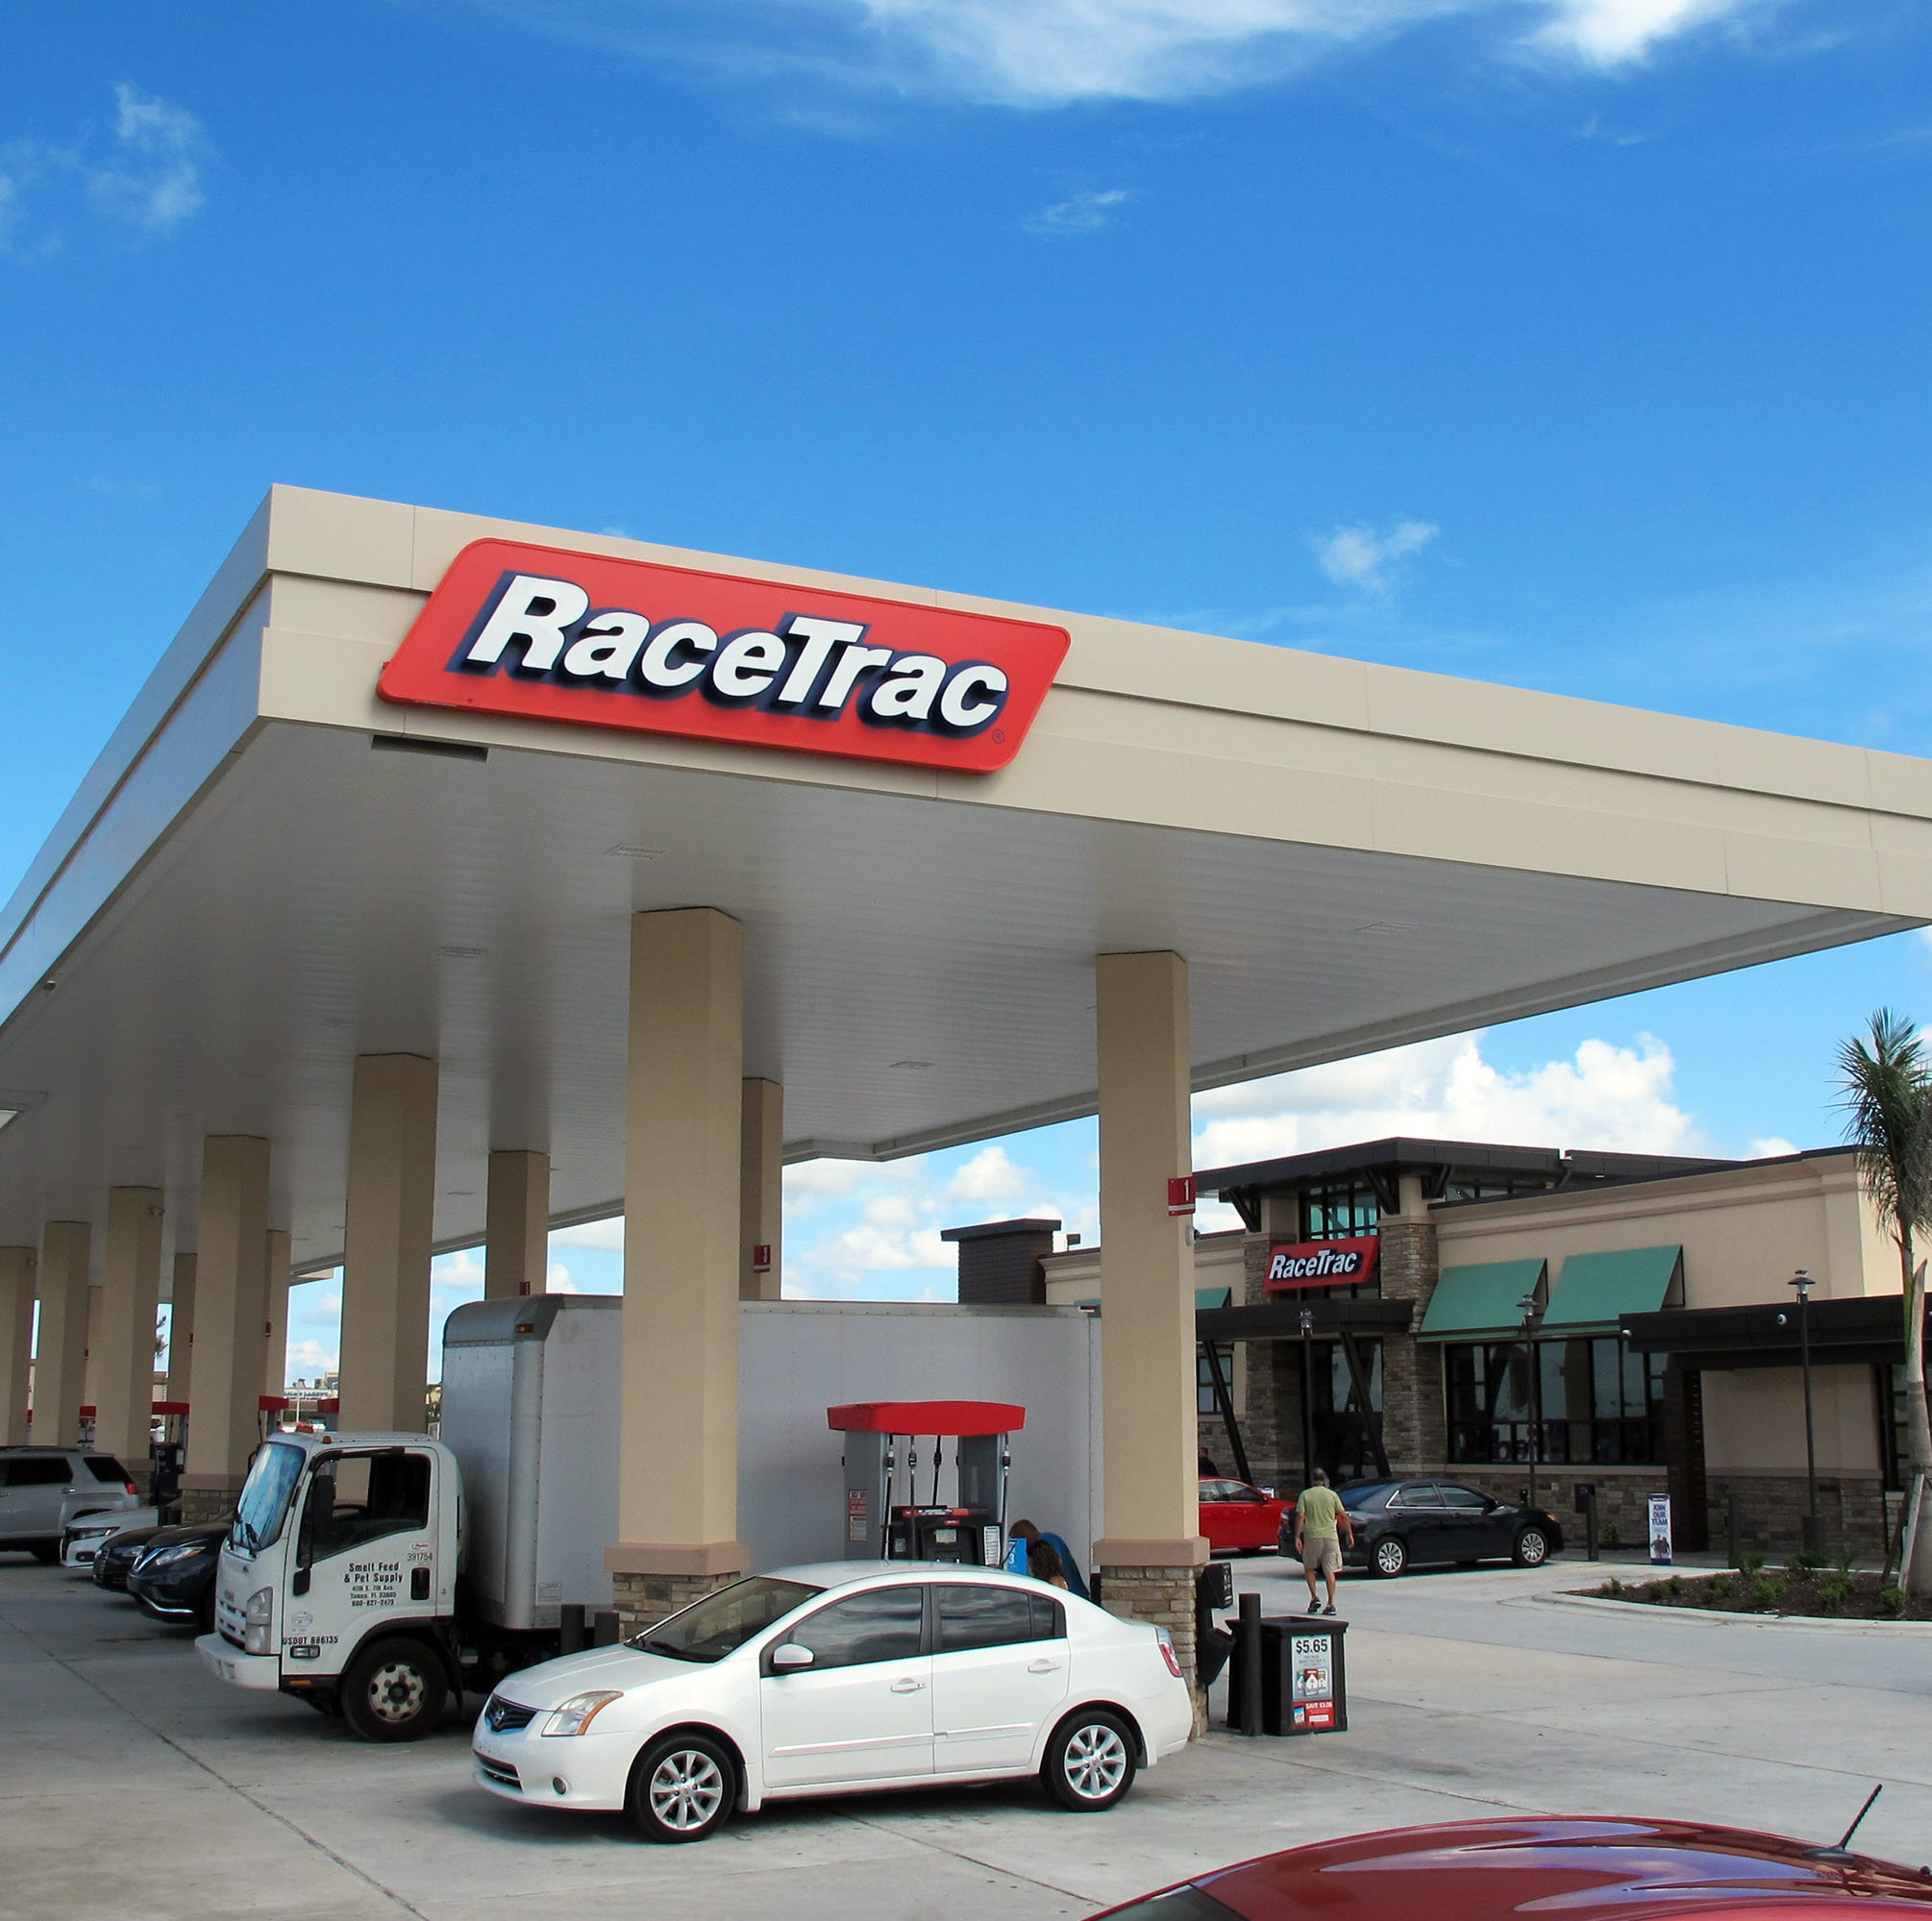 In the Know: RaceTrac plans 2 more stations, stores in East Naples